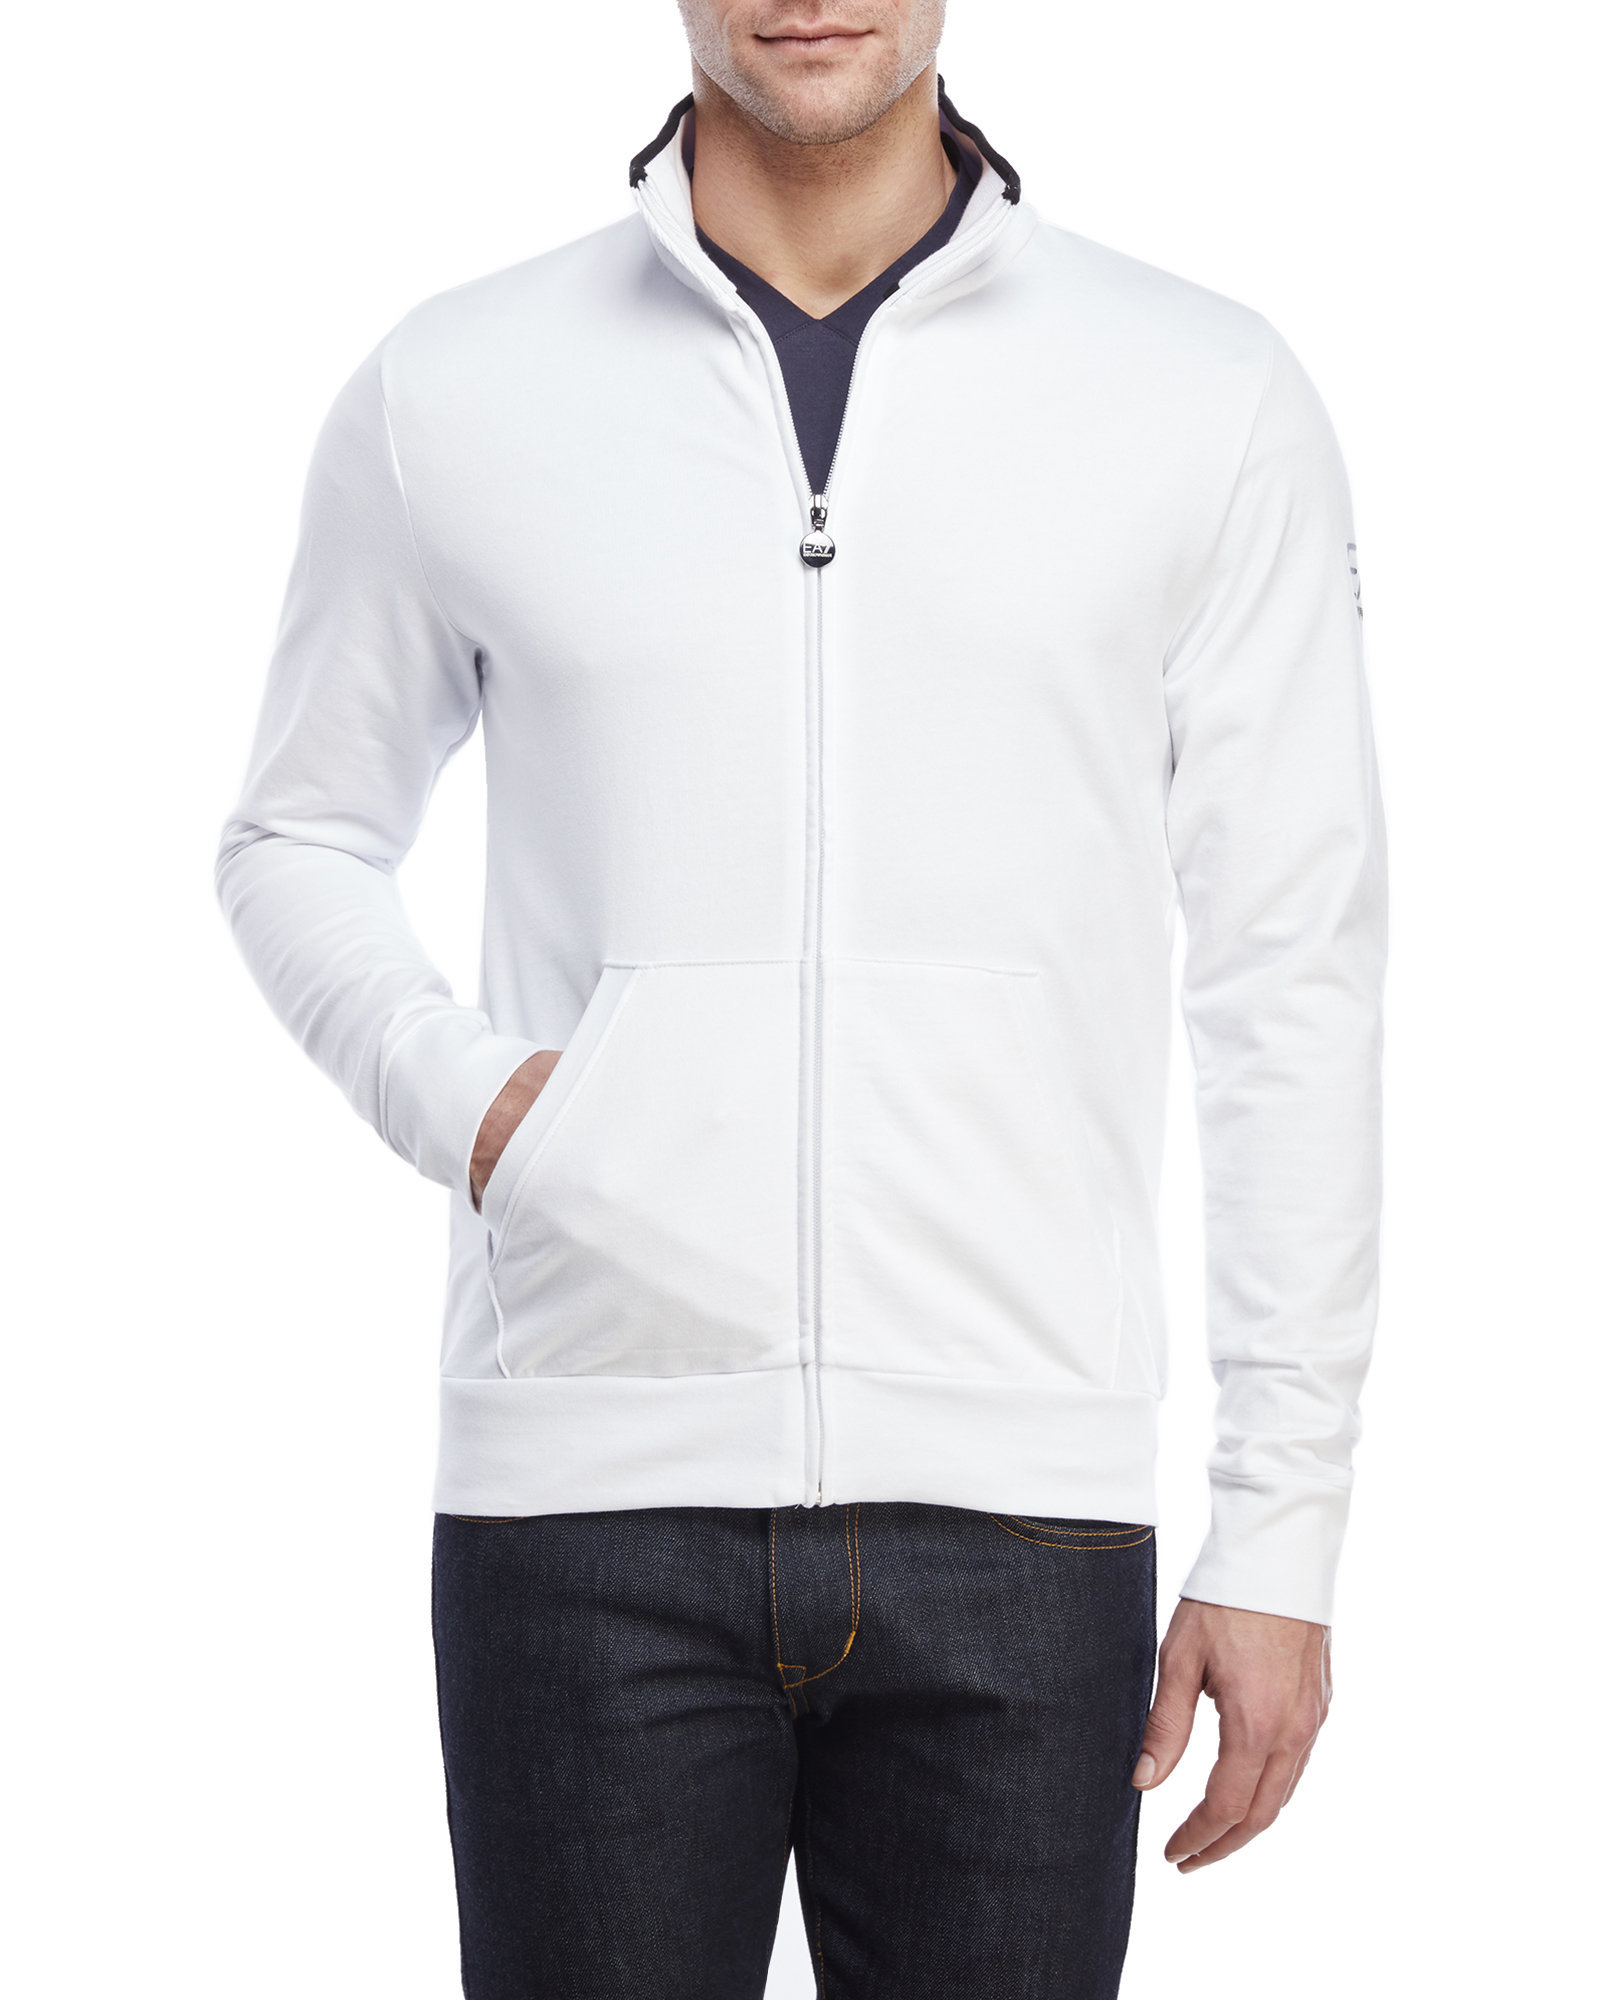 9a43b33a46d Gallery. Previously sold at  Century 21 · Men s Full Zip Hoodies Men s Zip  Up ...